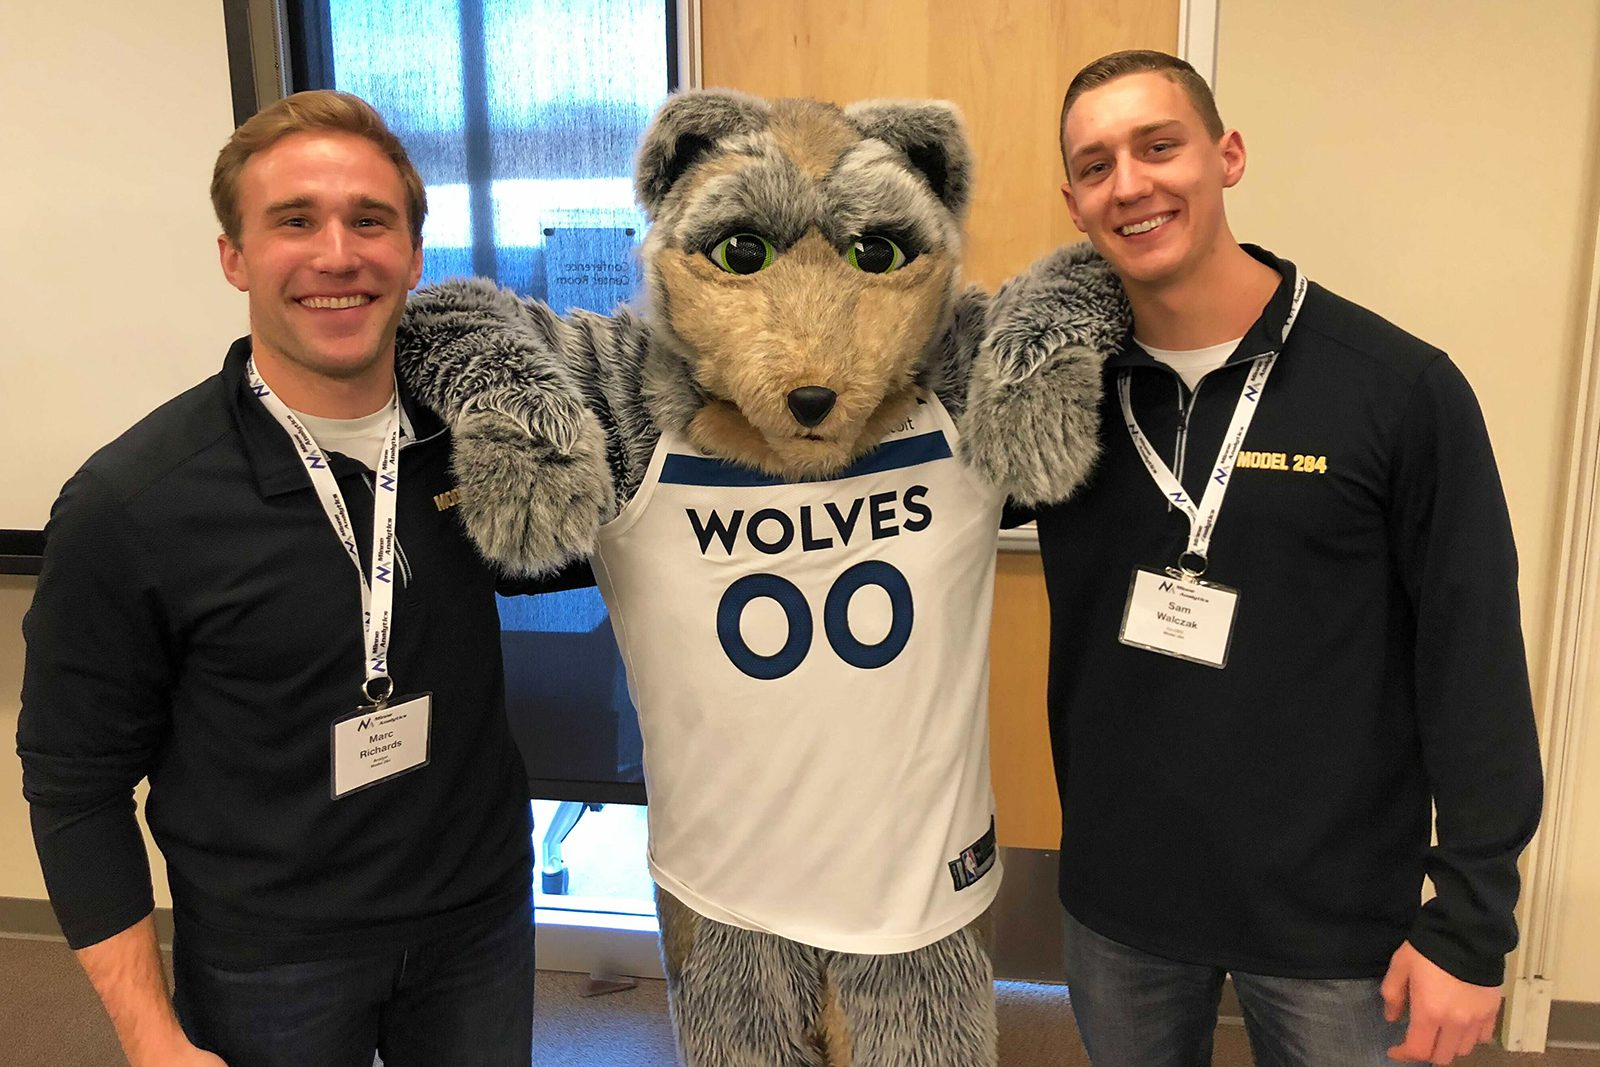 Marc Richards '16 (left) and Sam Walczak '14 (right), pictured here with Minnesota Timberwolves mascot Crunch the Wolf, are two members of the team that won the National Football League's Big Data Bowl.